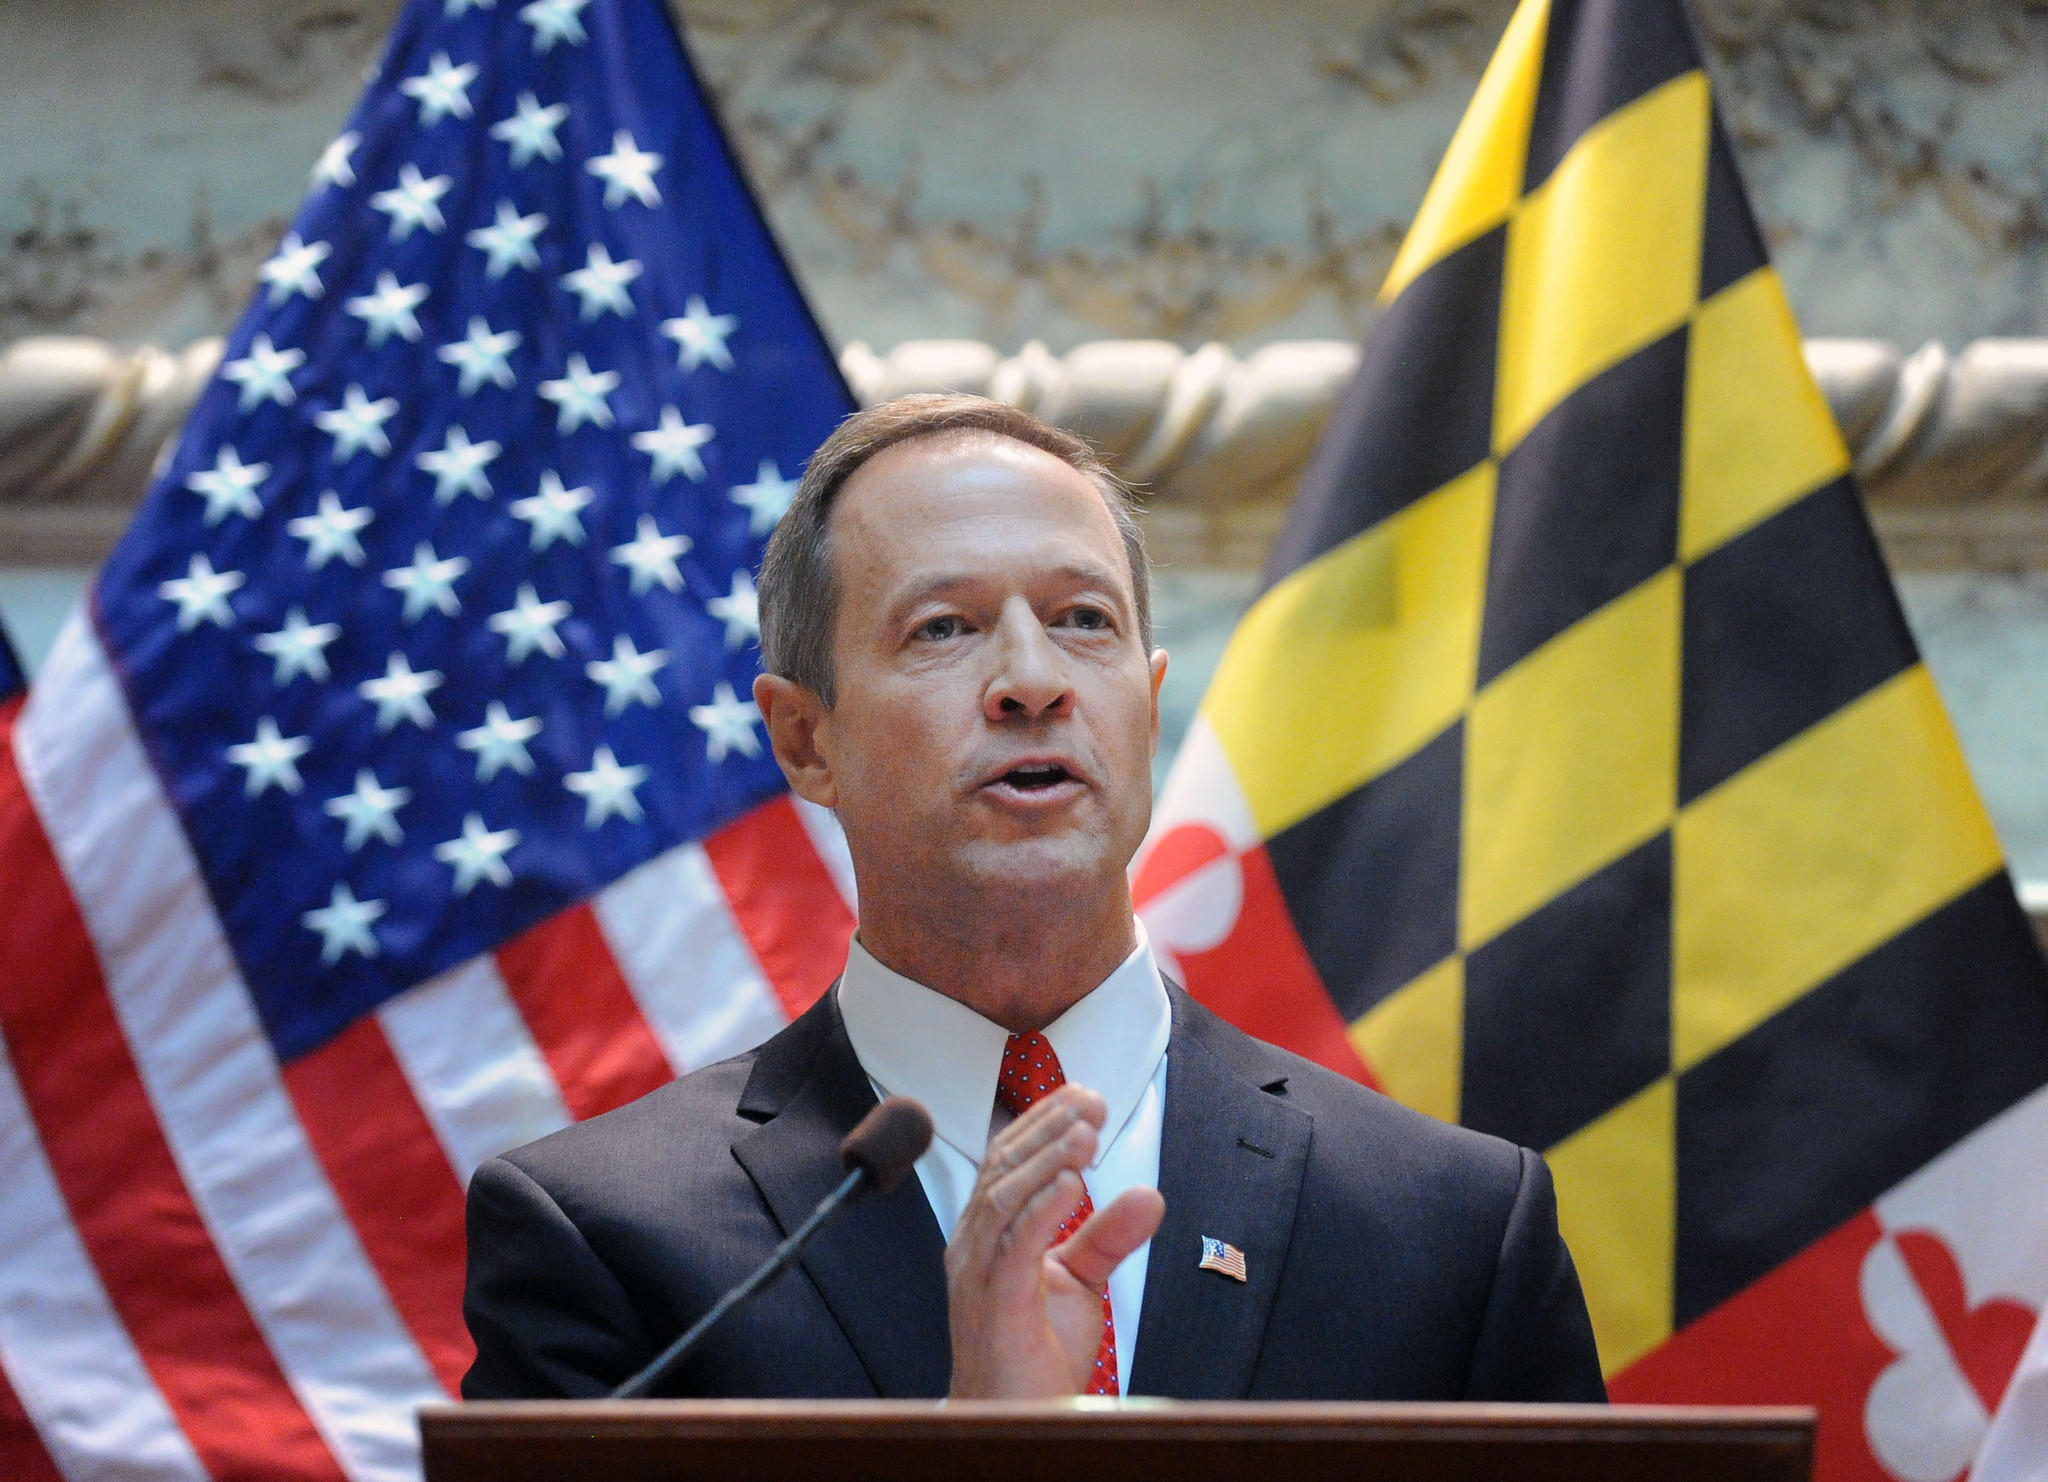 Martin O'Malley delivers his final State of the State address as governor on Jan. 23, 2014.